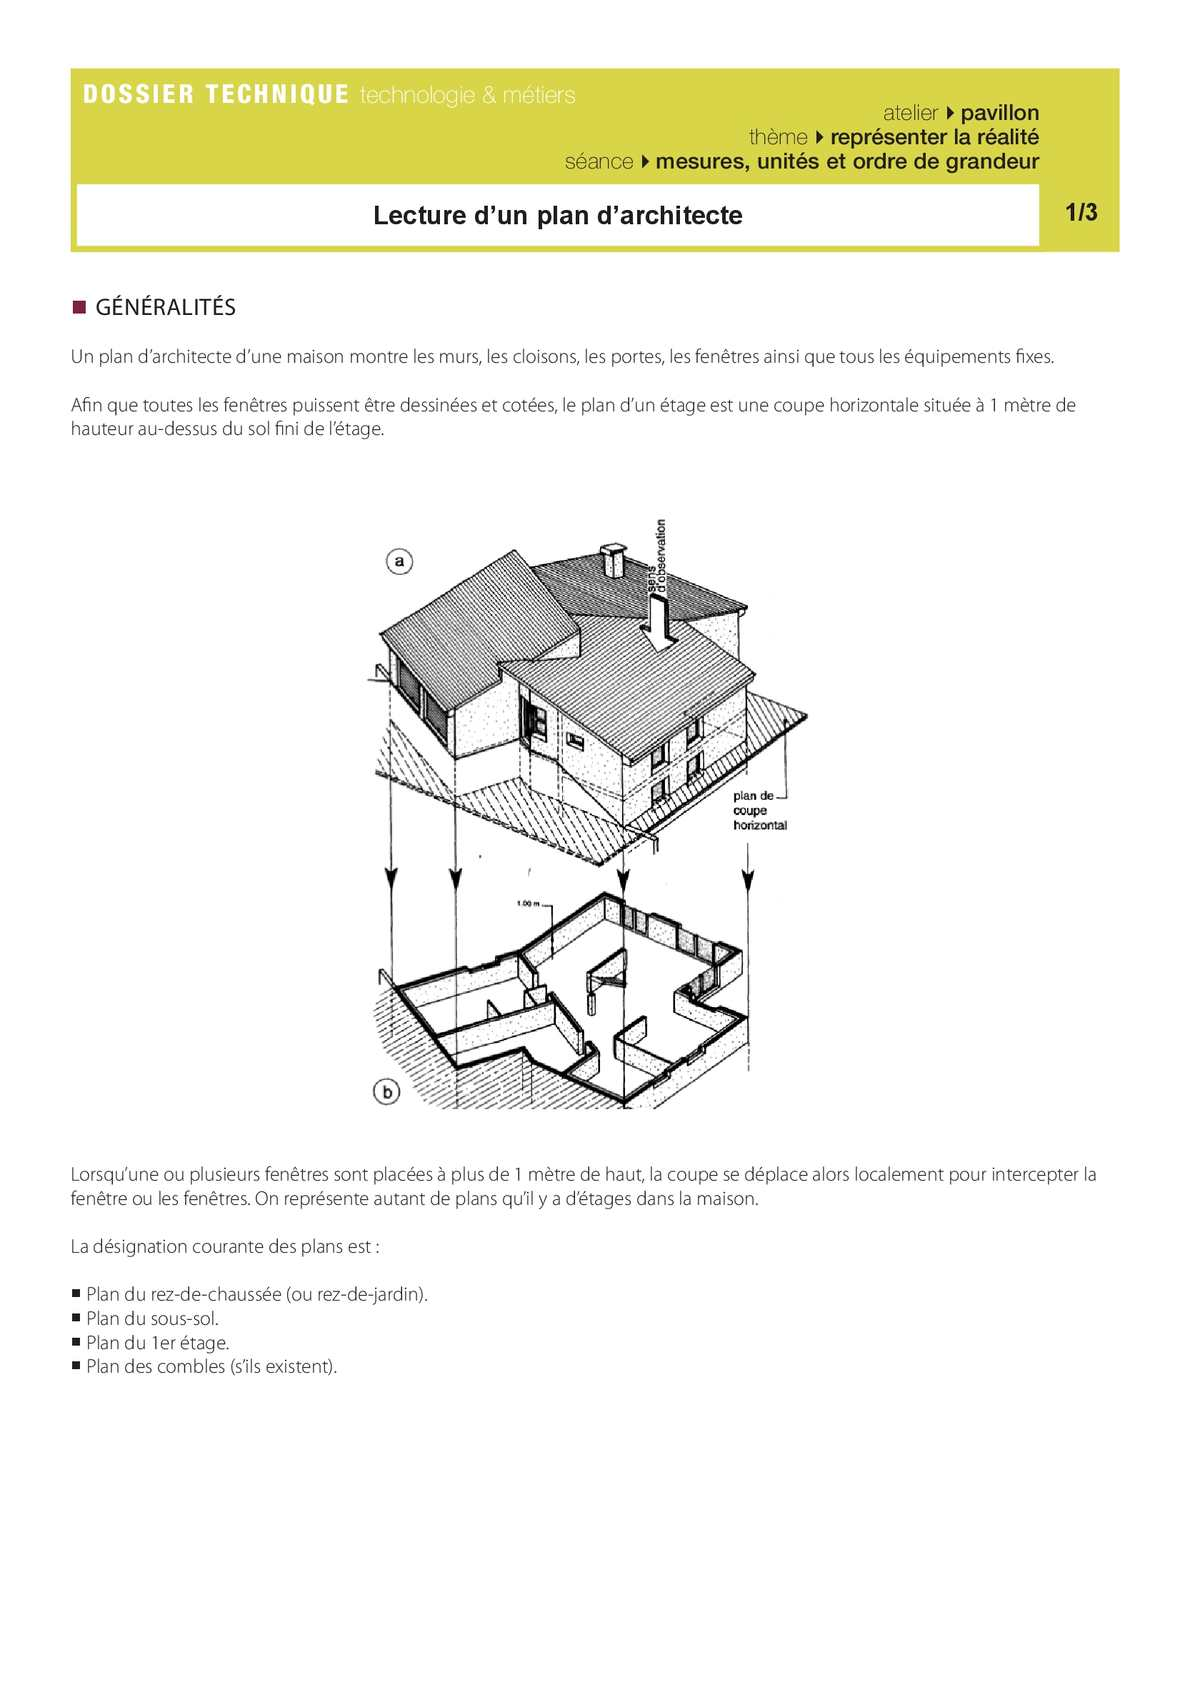 Calam o lecture plan archi for Lecture plan architecte